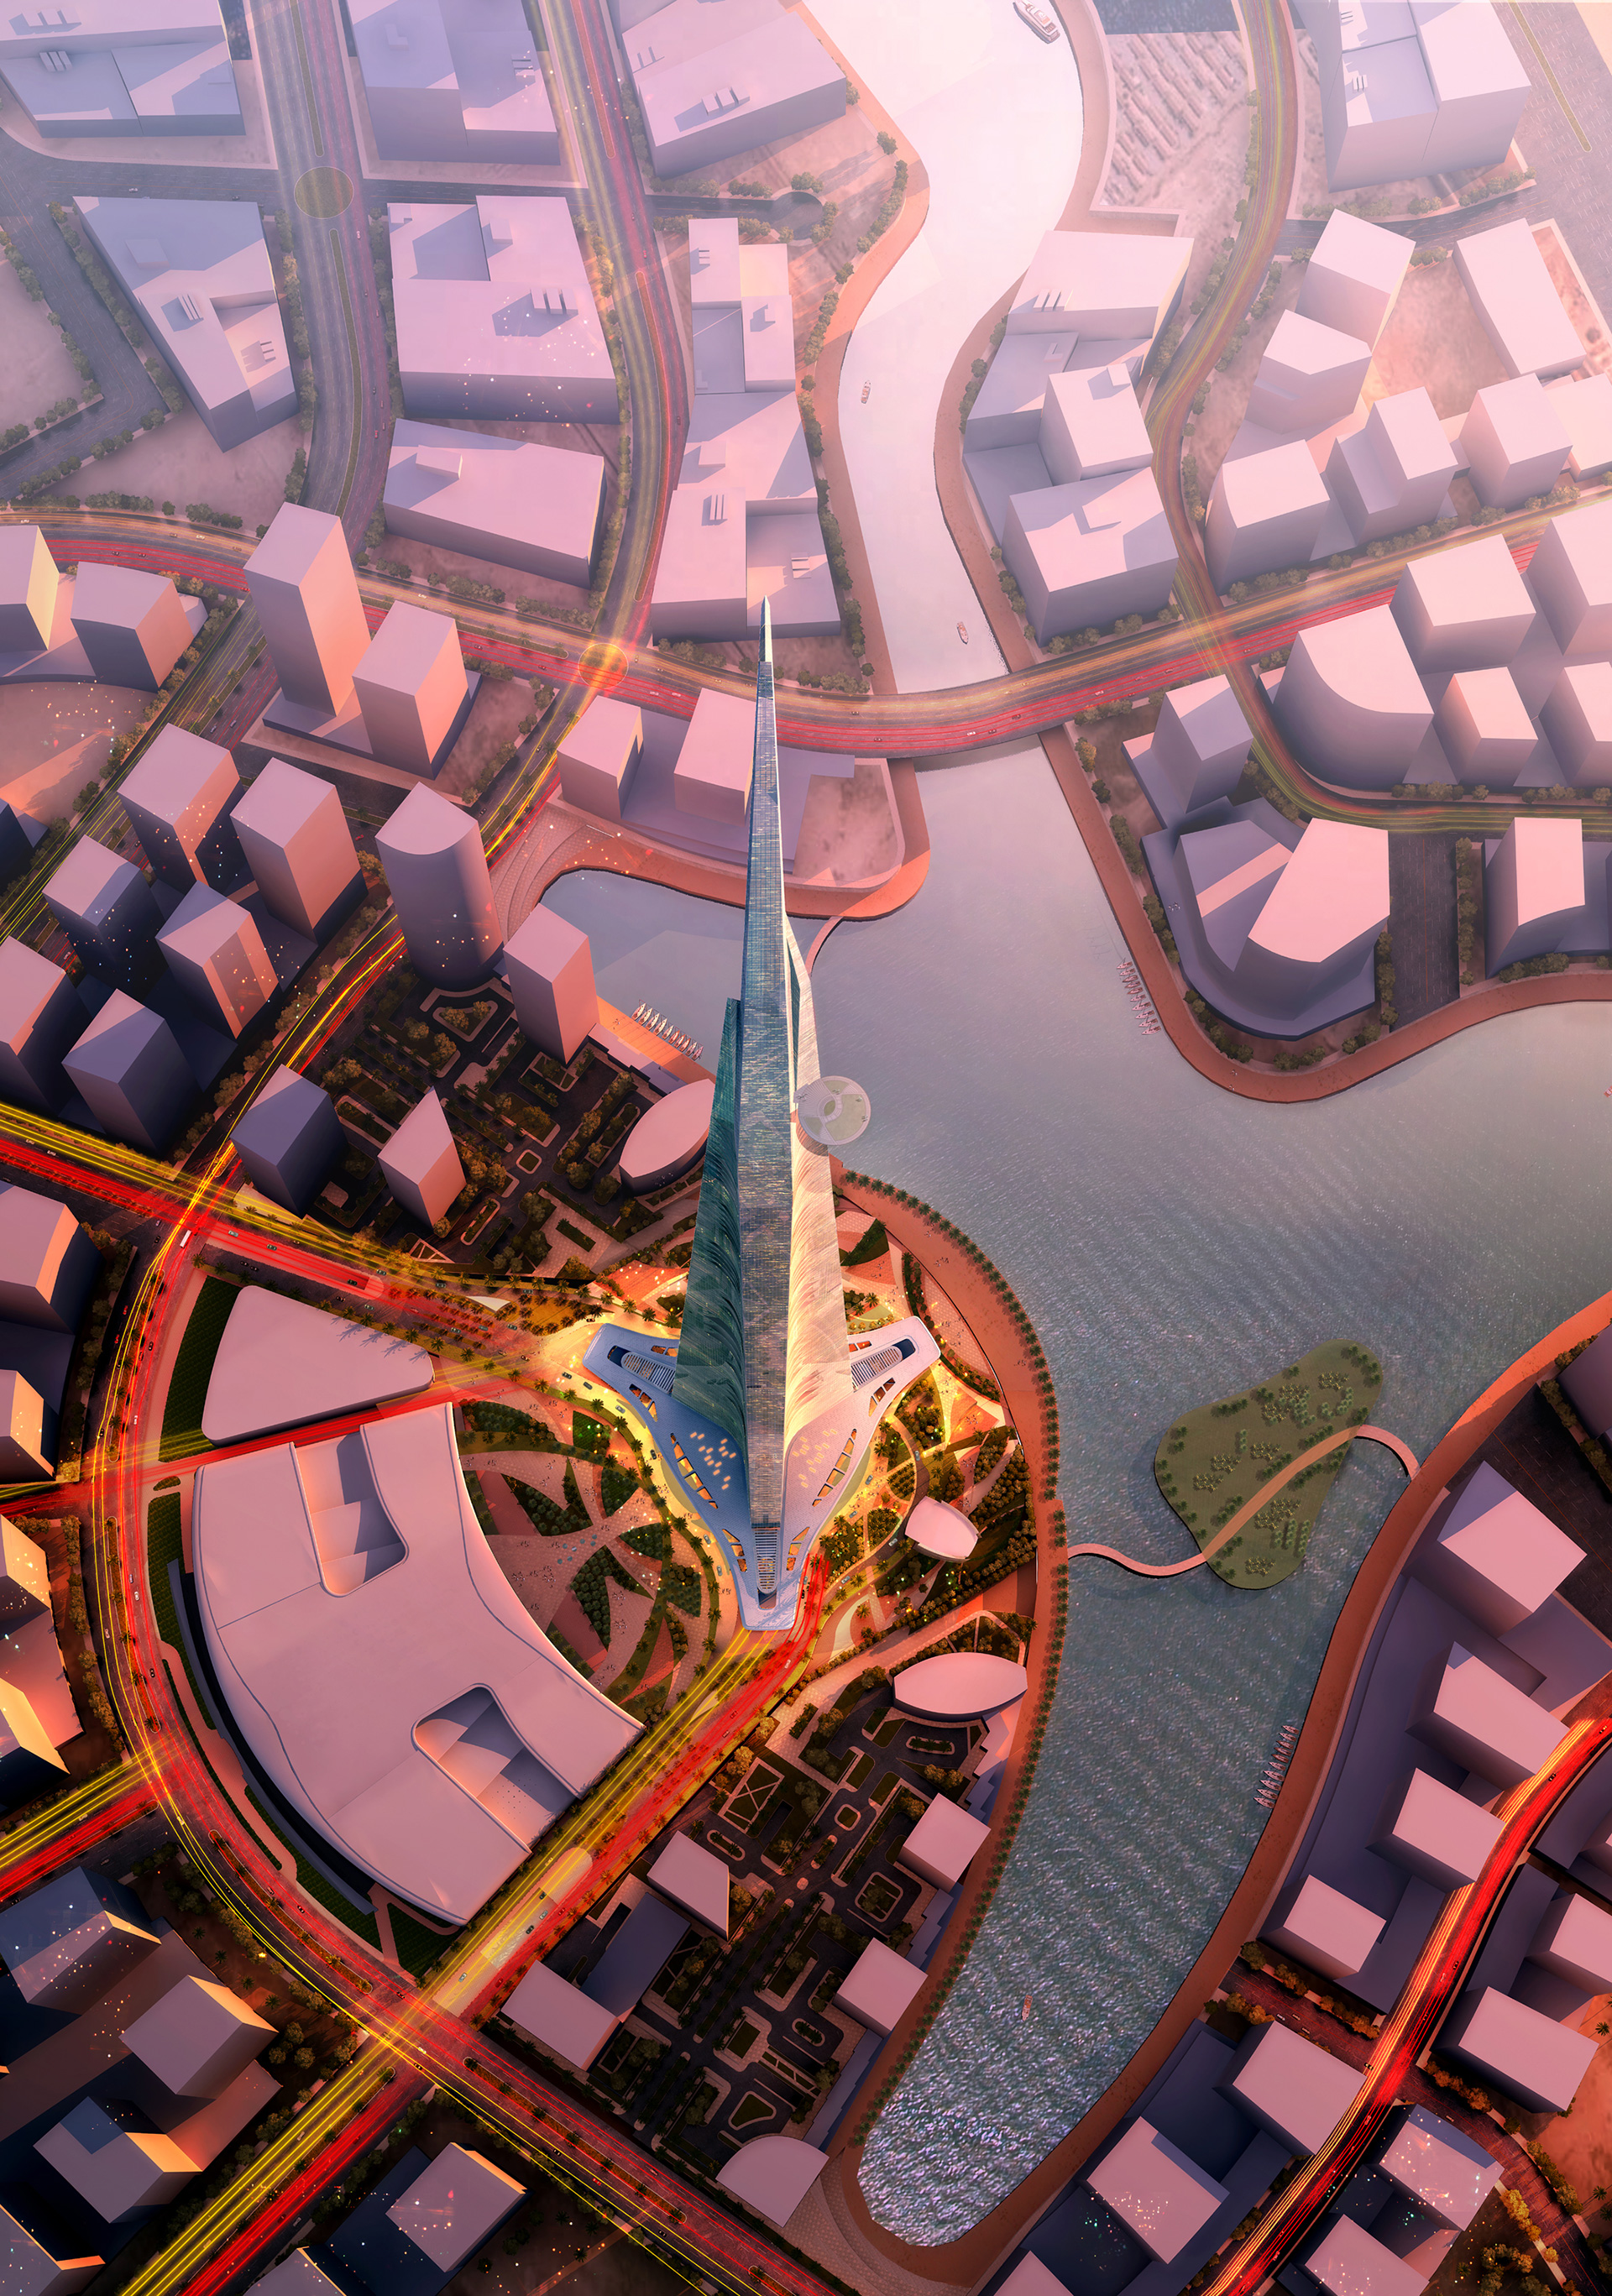 Jeddah Tower designed by Adrian Smith and Gordon Gill as the design architects of the project and Adrian Smith + Gordon Gill Architecture the design firm | Adrian Smith | Gordon Gill | STIRworld